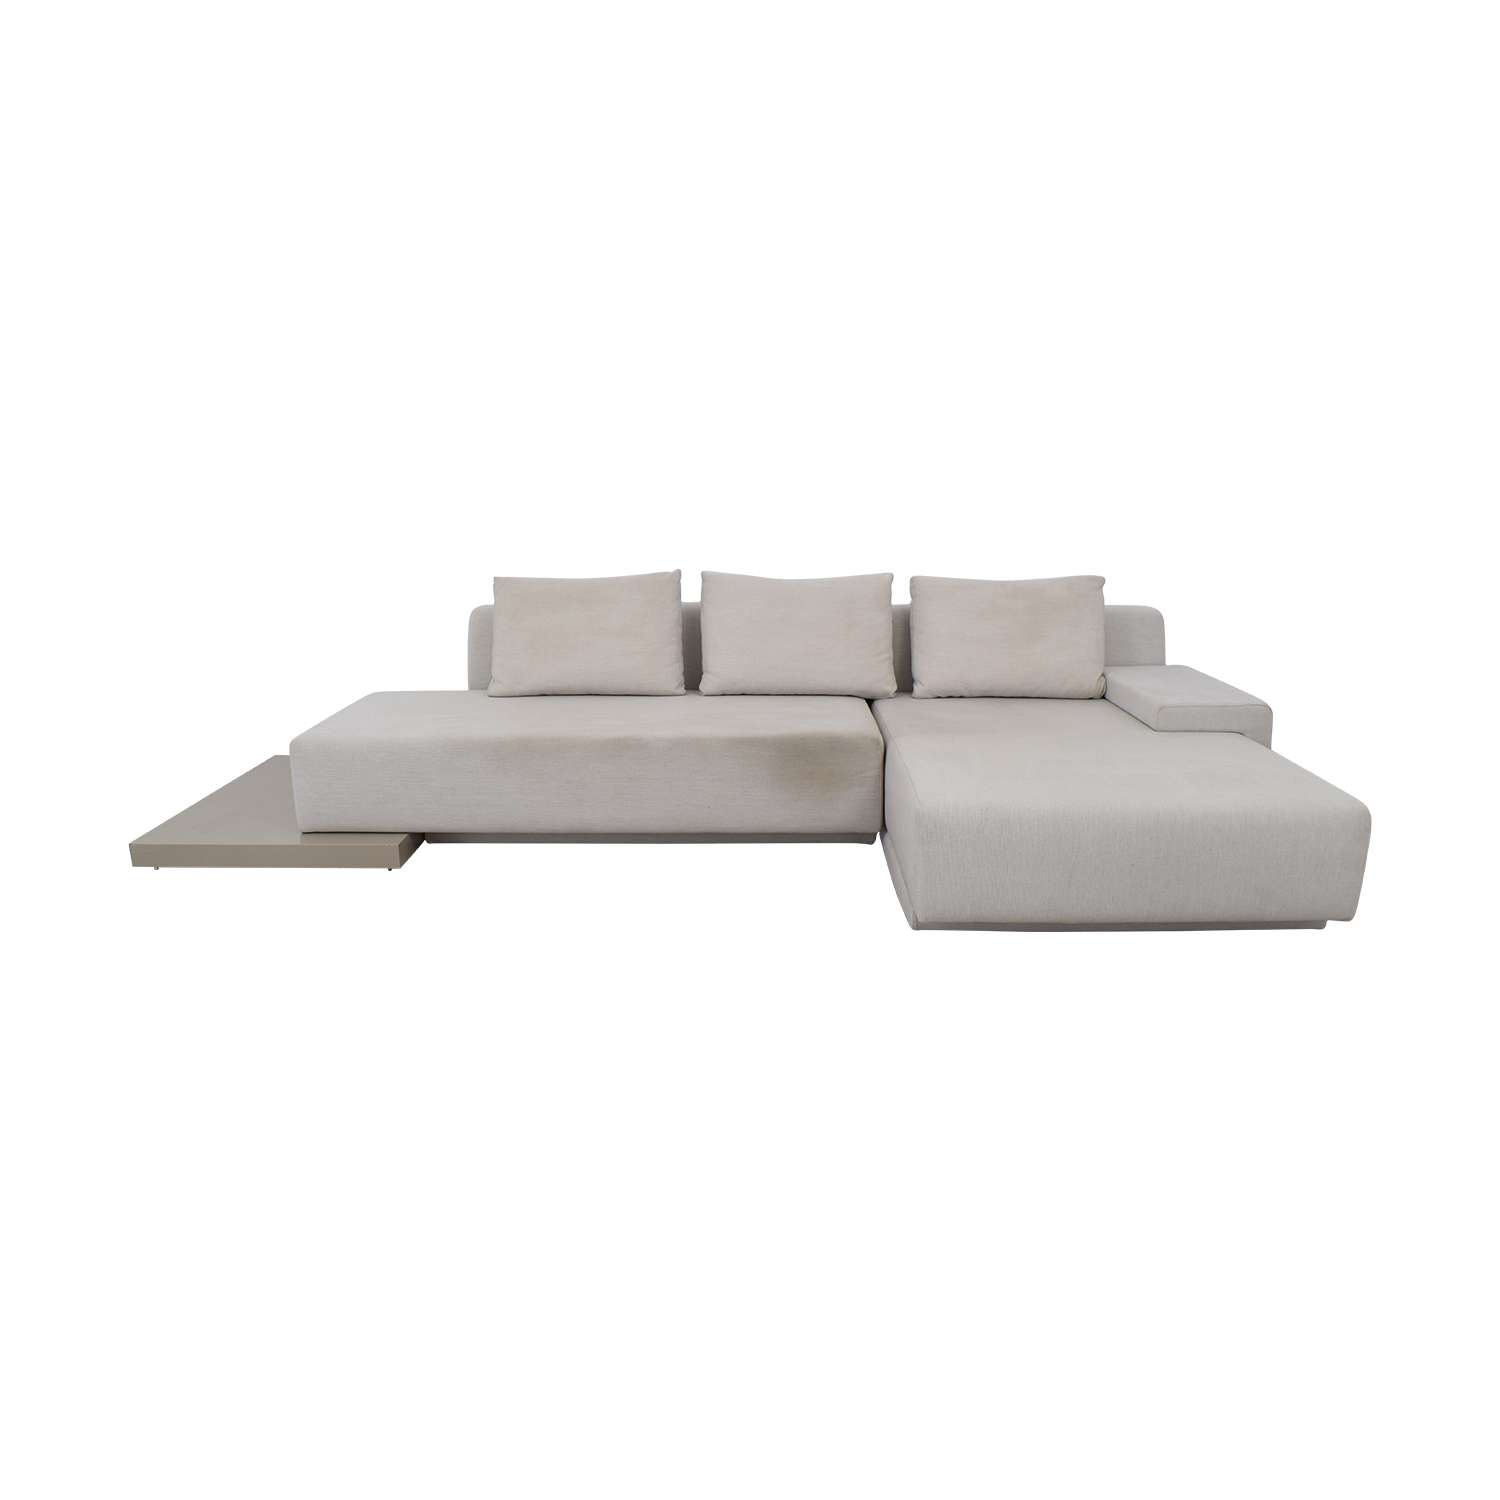 Viccarbe Viccarbe White Sectional nj